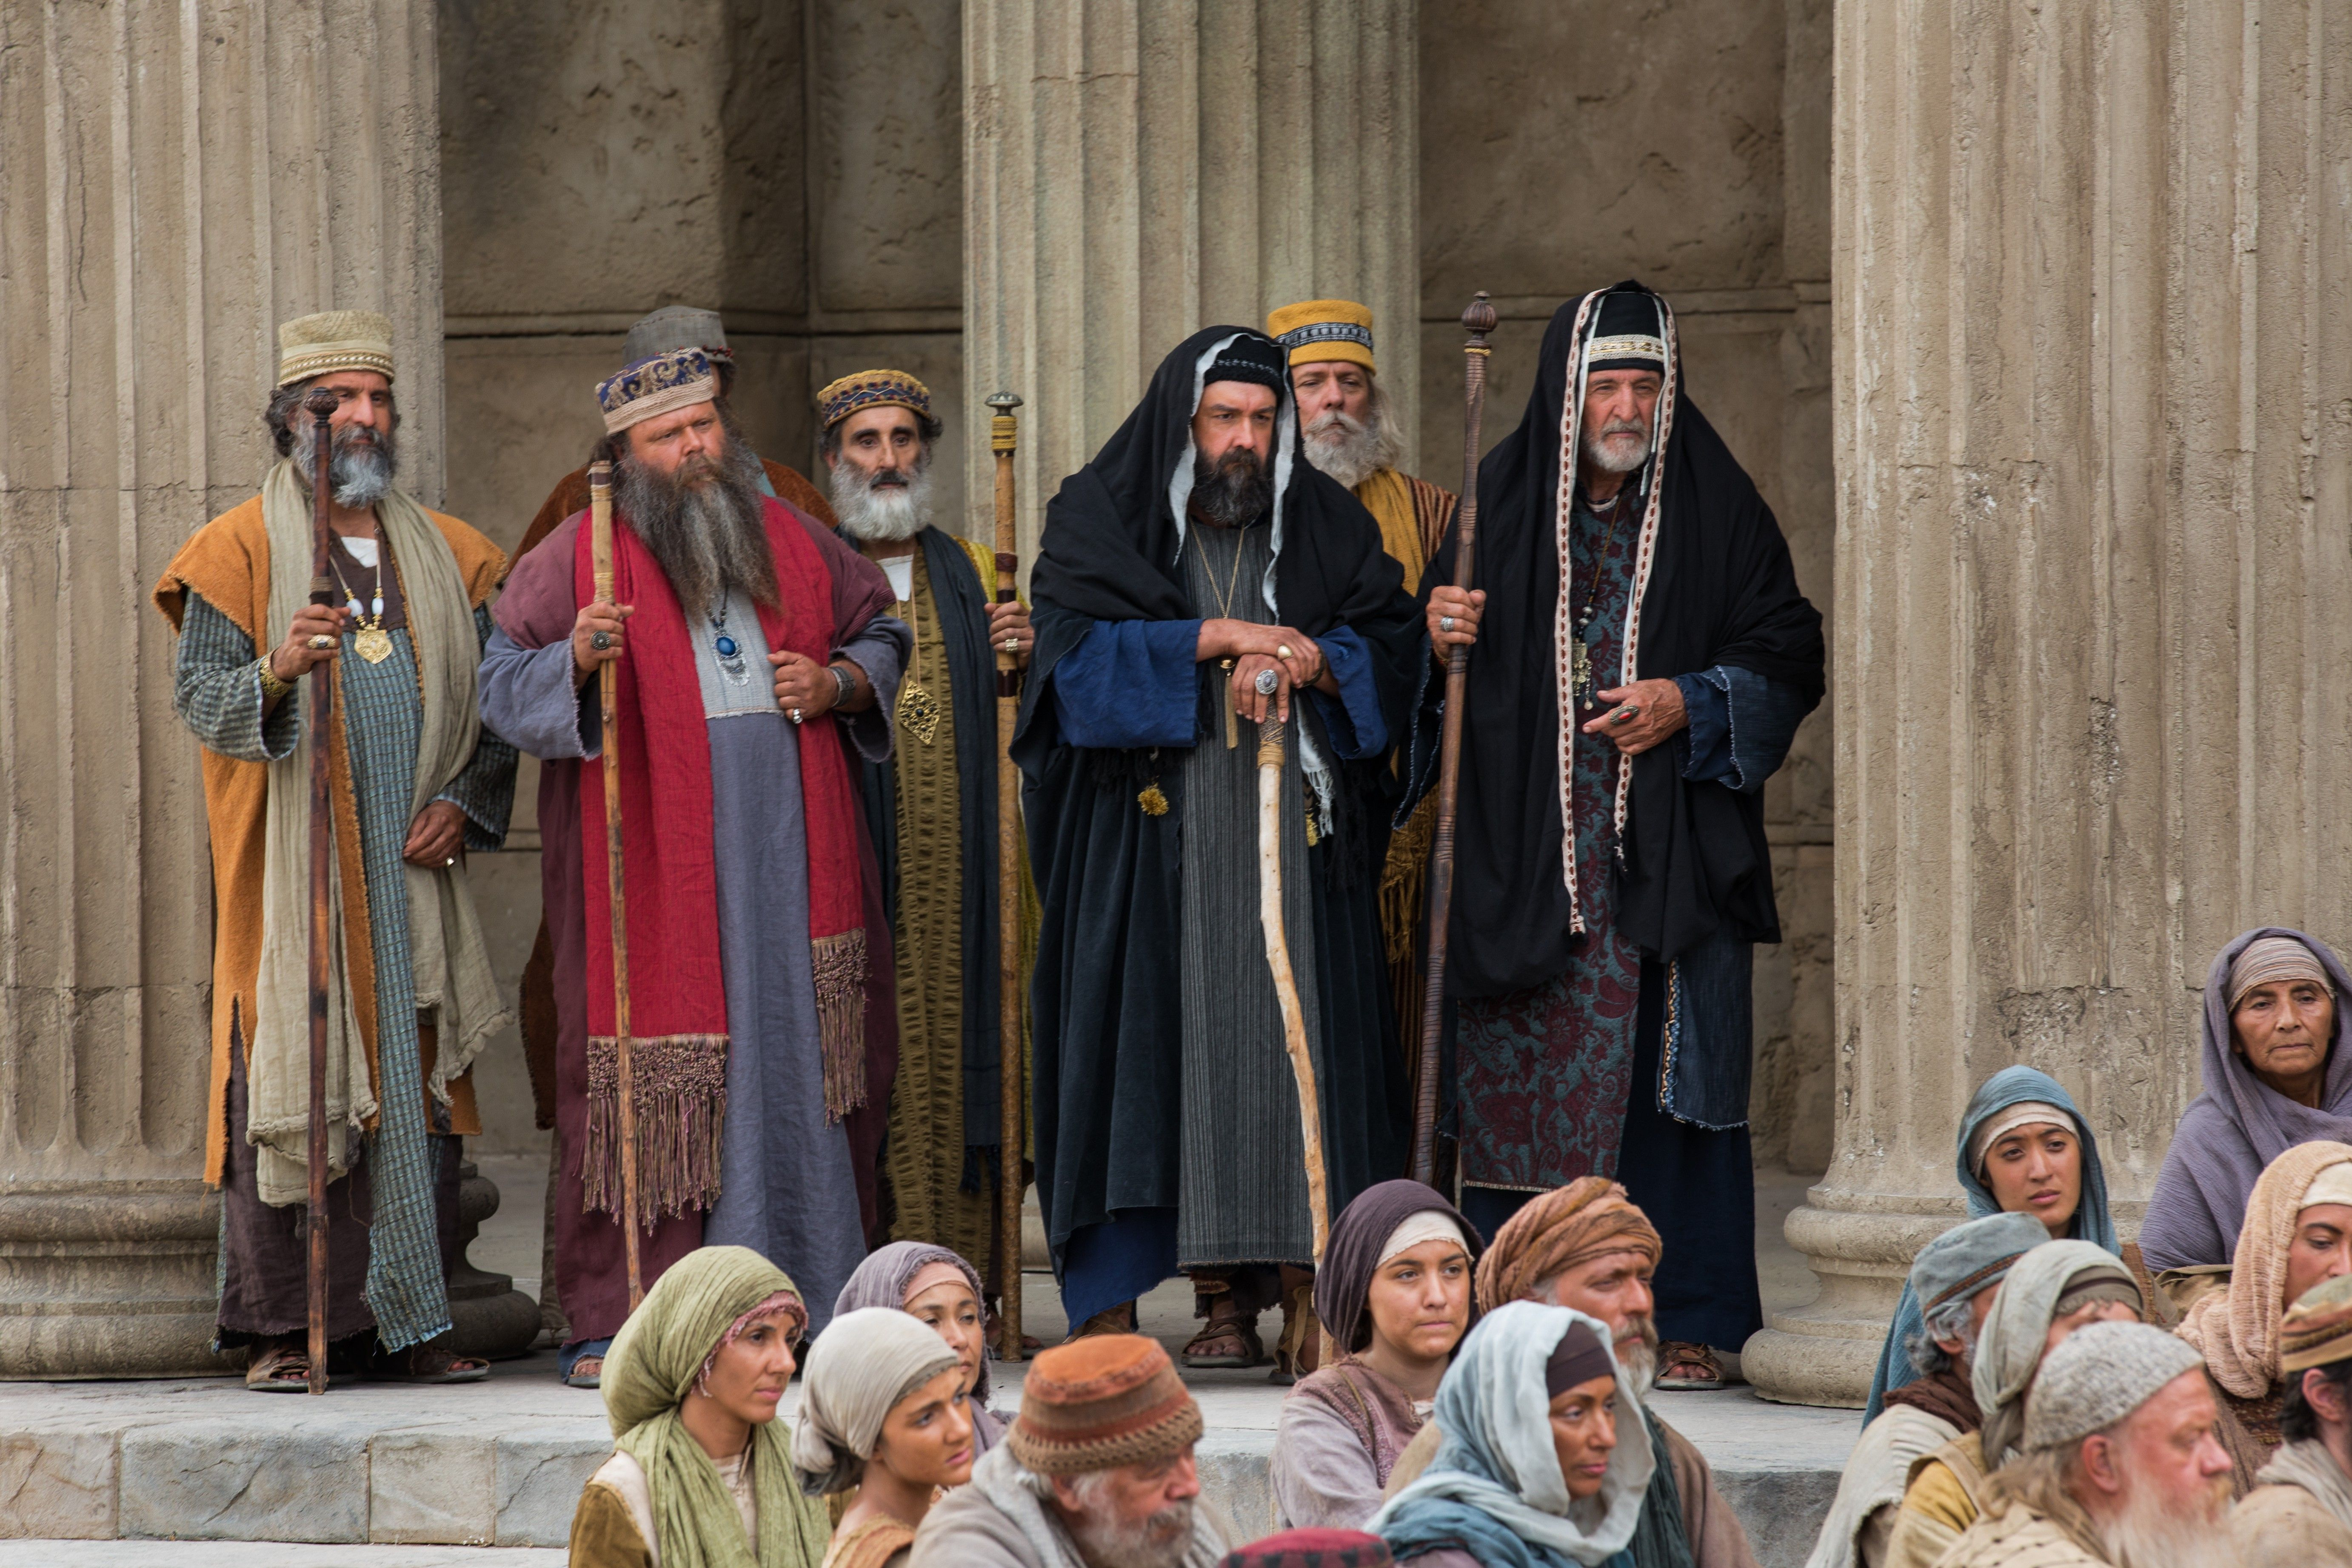 The Sadducees and Pharisees listening to Christ tell the people that He is the Good Shepherd.